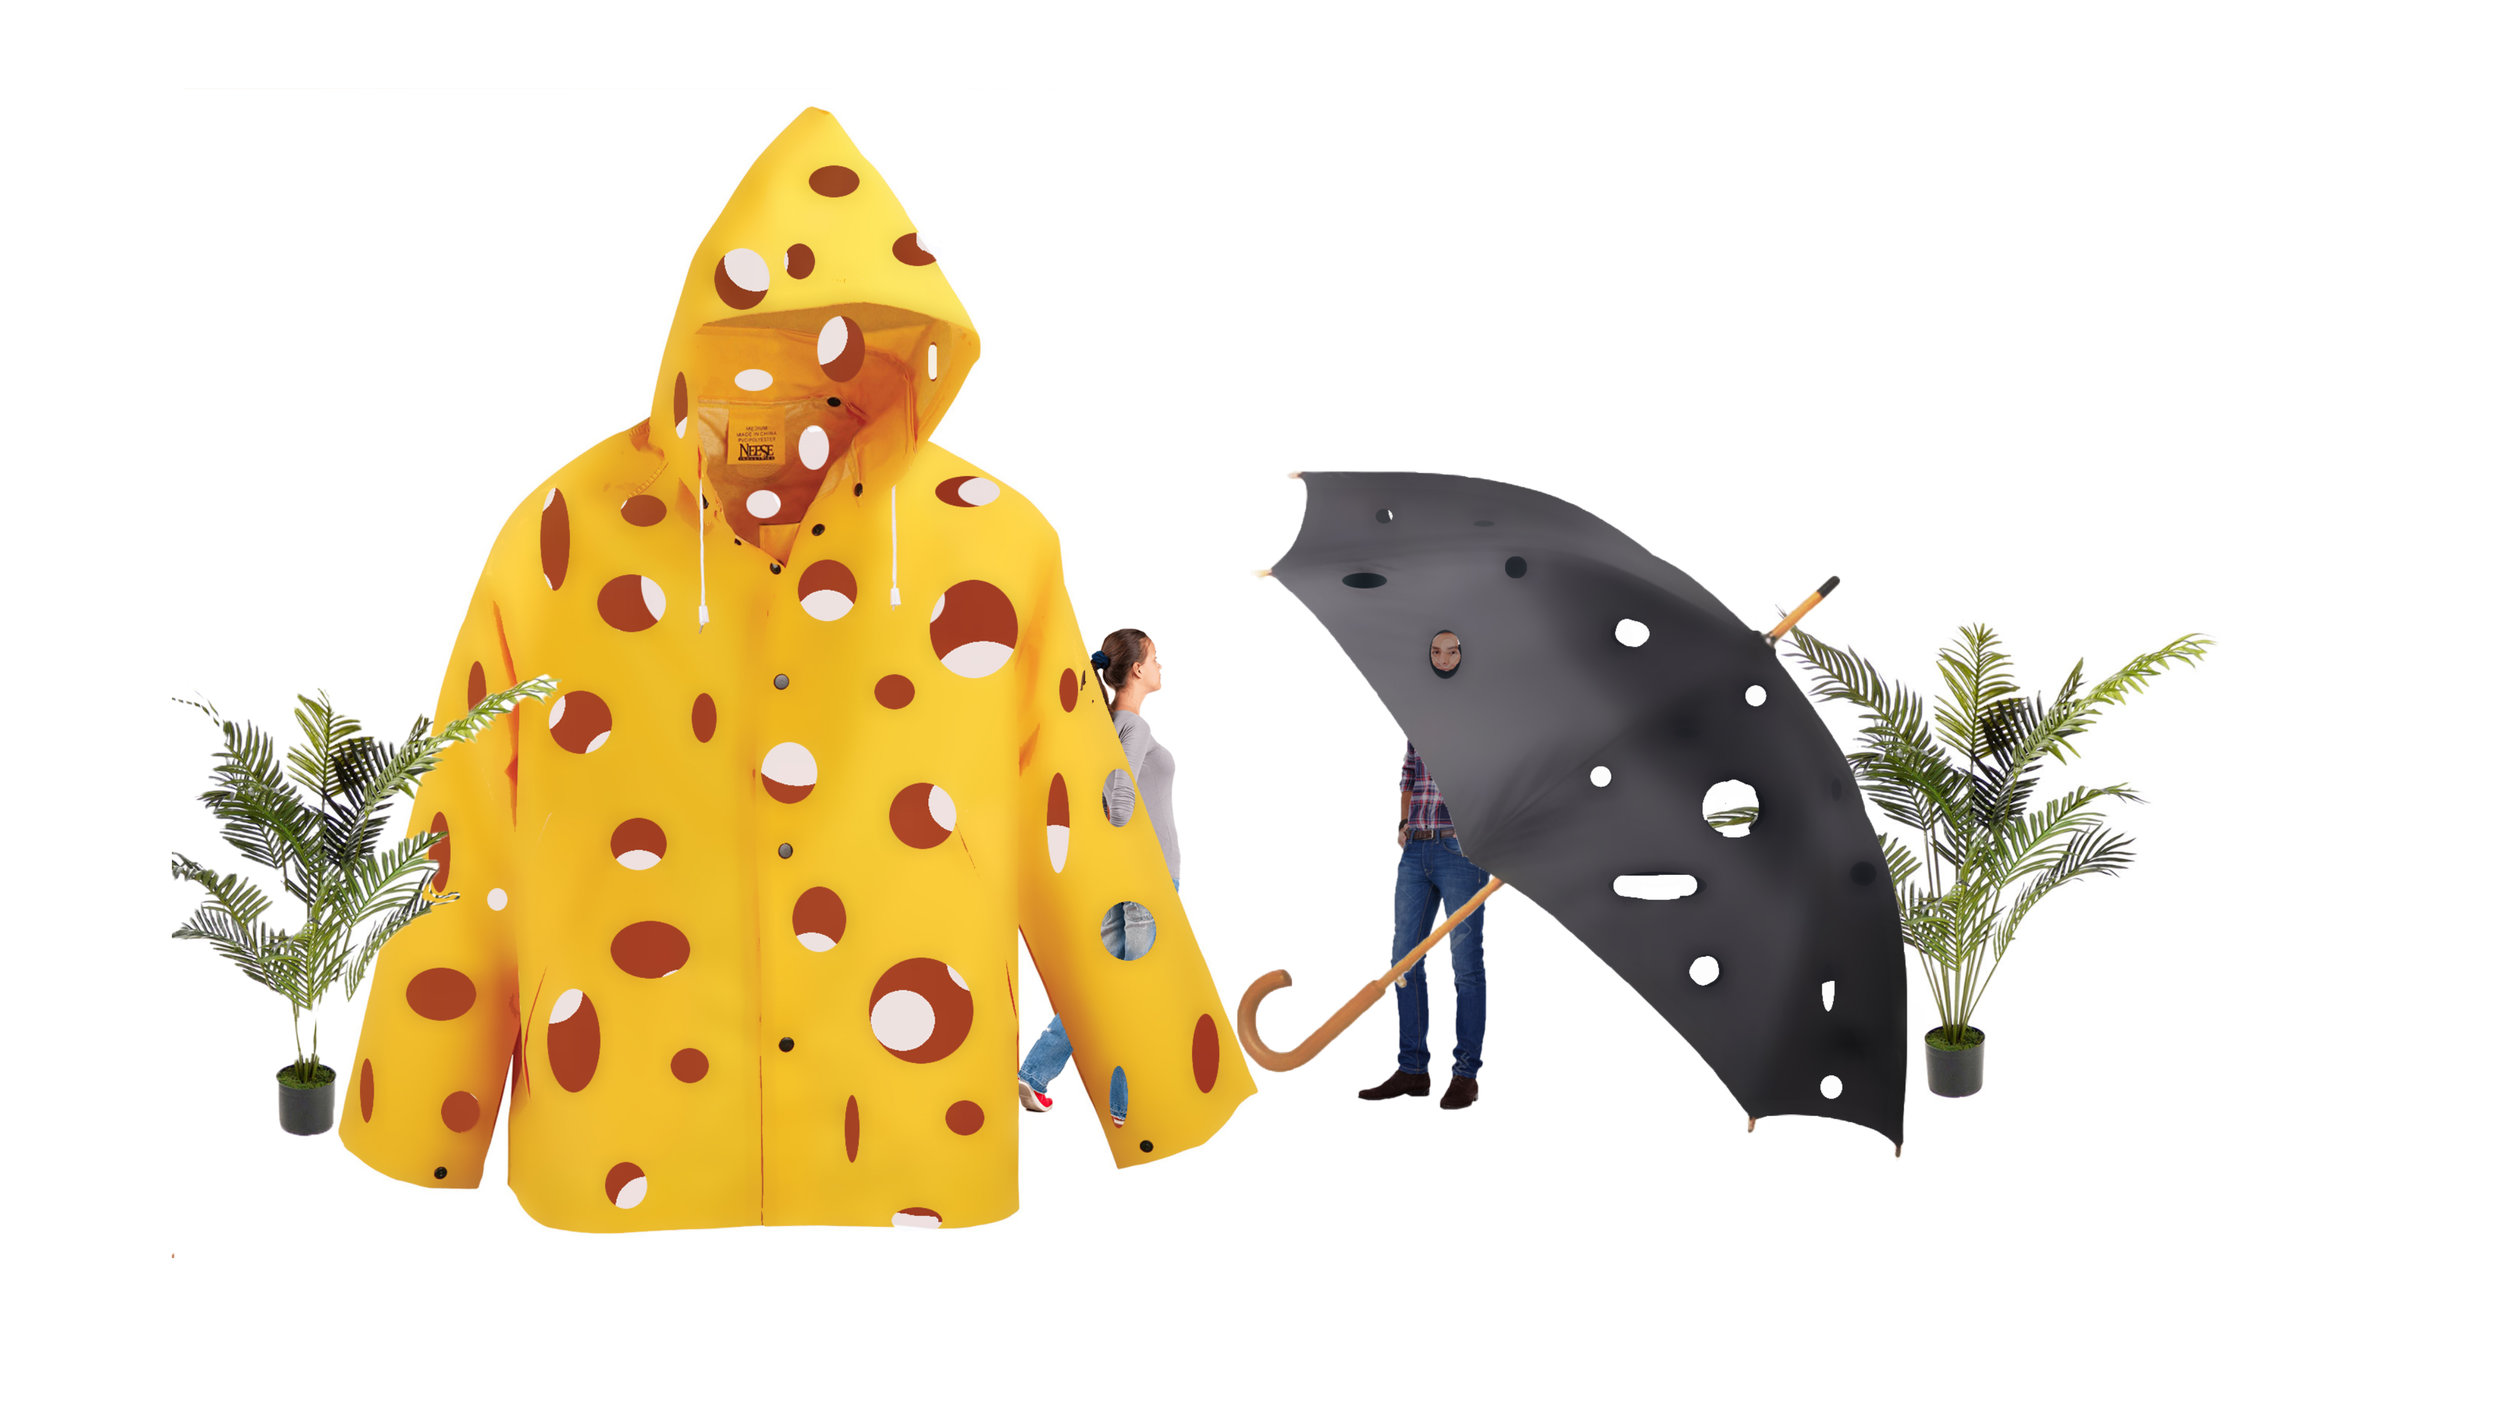 raincoat with holes in it and an umbrella with holes in it and some plants.jpg